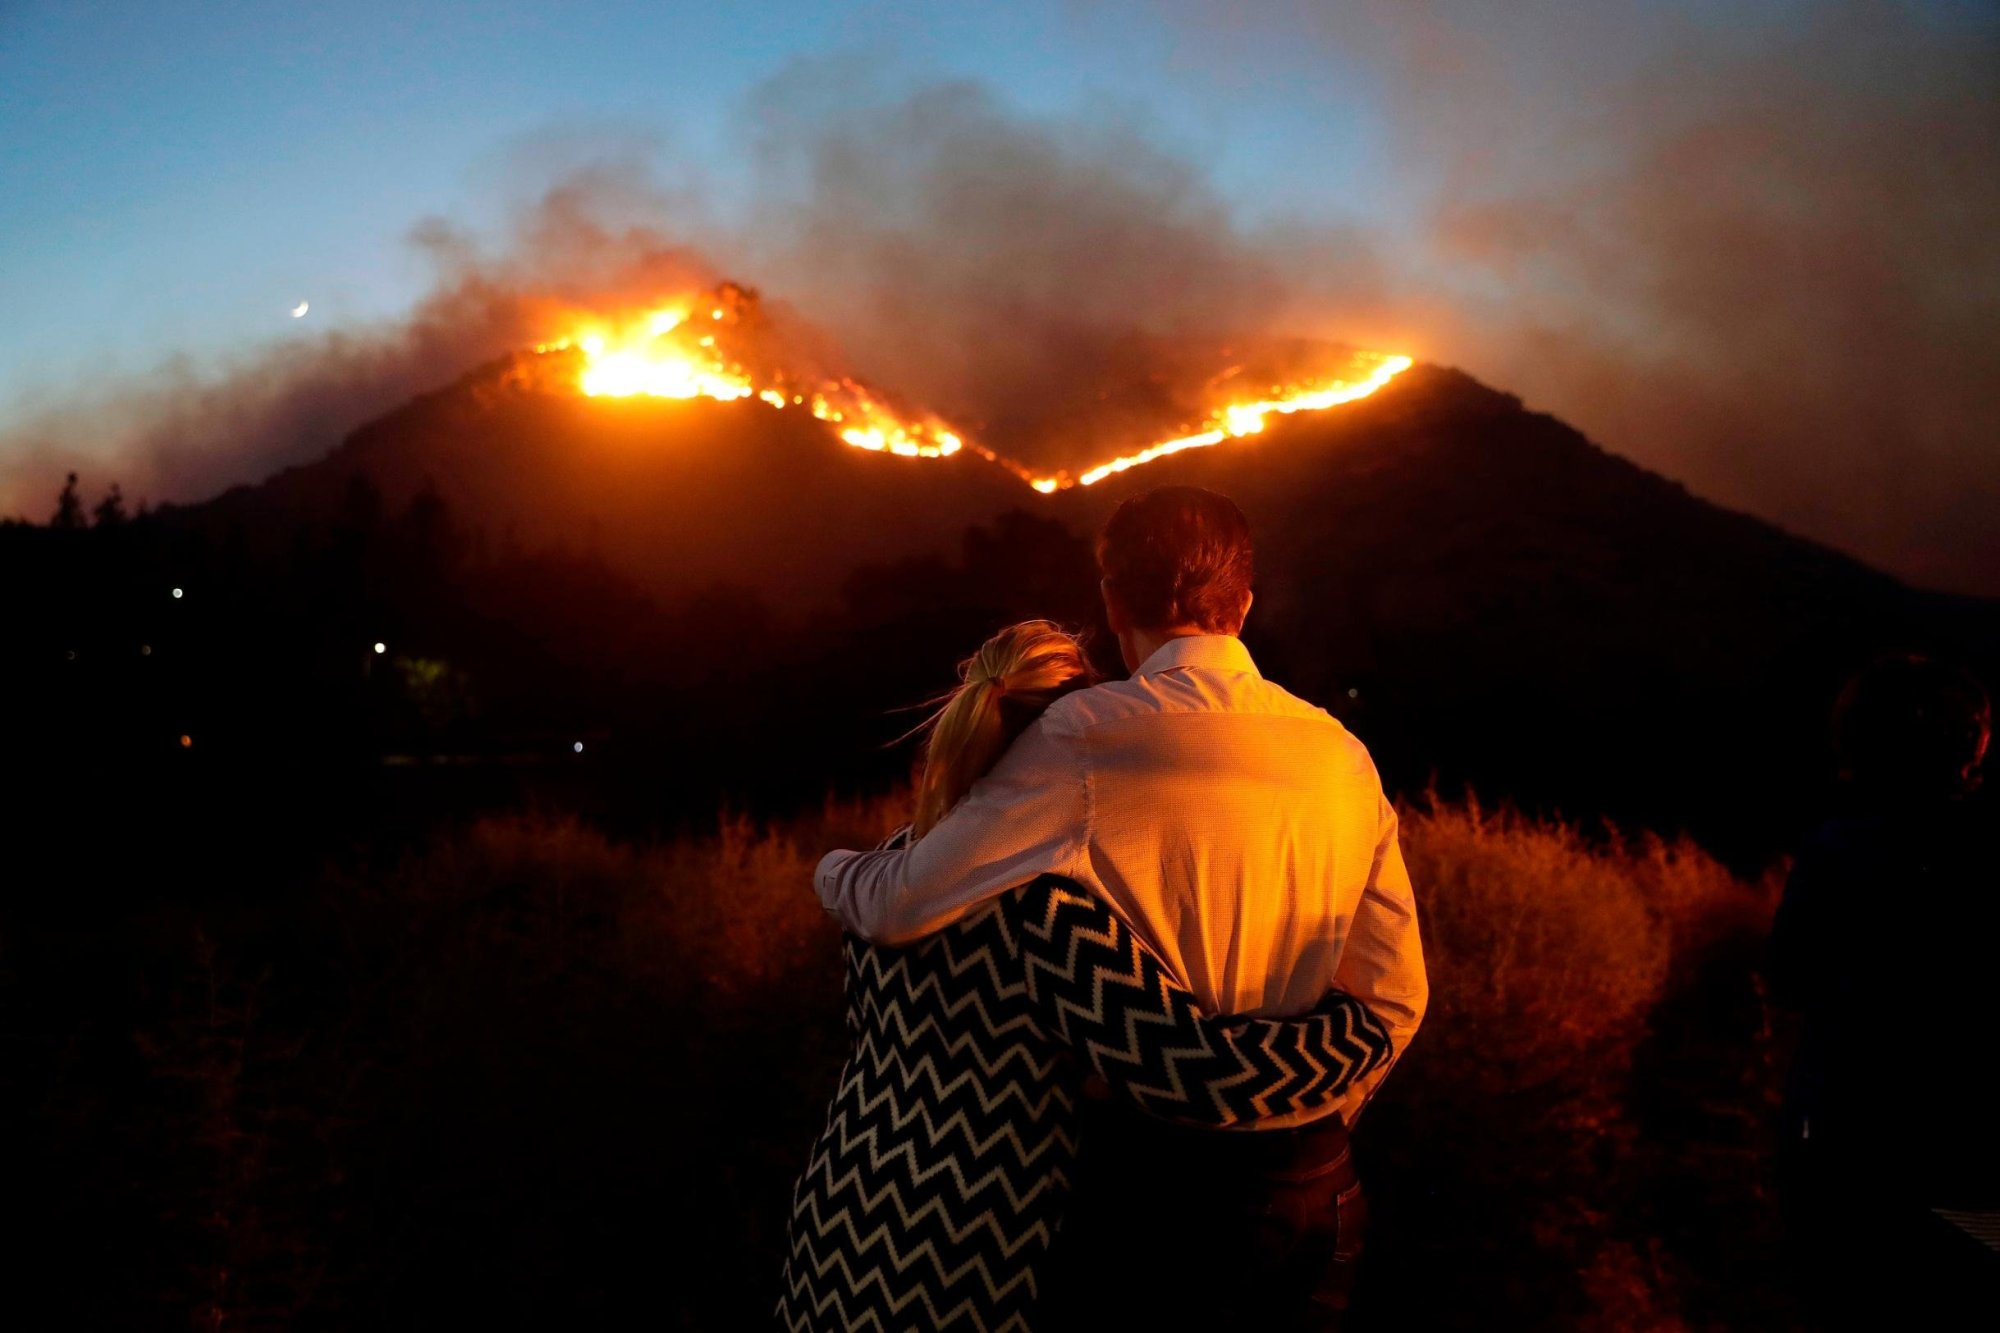 Roger Bloxberg and his wife, Anne, hug as they watch a wildfire on a hilltop on Friday, November 9, near their home in the West Hills area of Los Angele